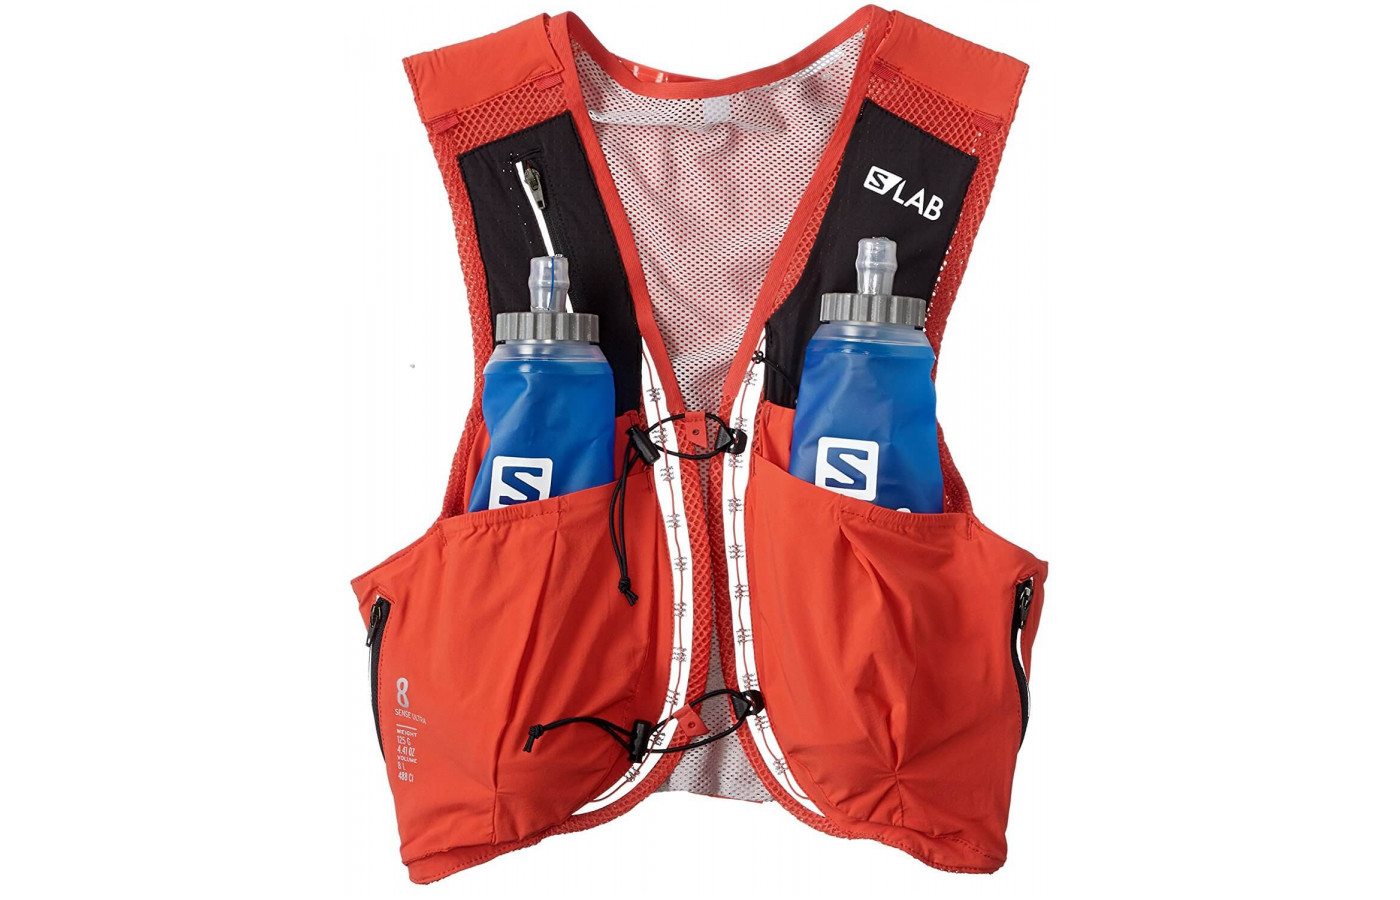 The Salomon S-Lab Sense Ultra 8 Set's bottles each hold 500mL of water and are BPA-free